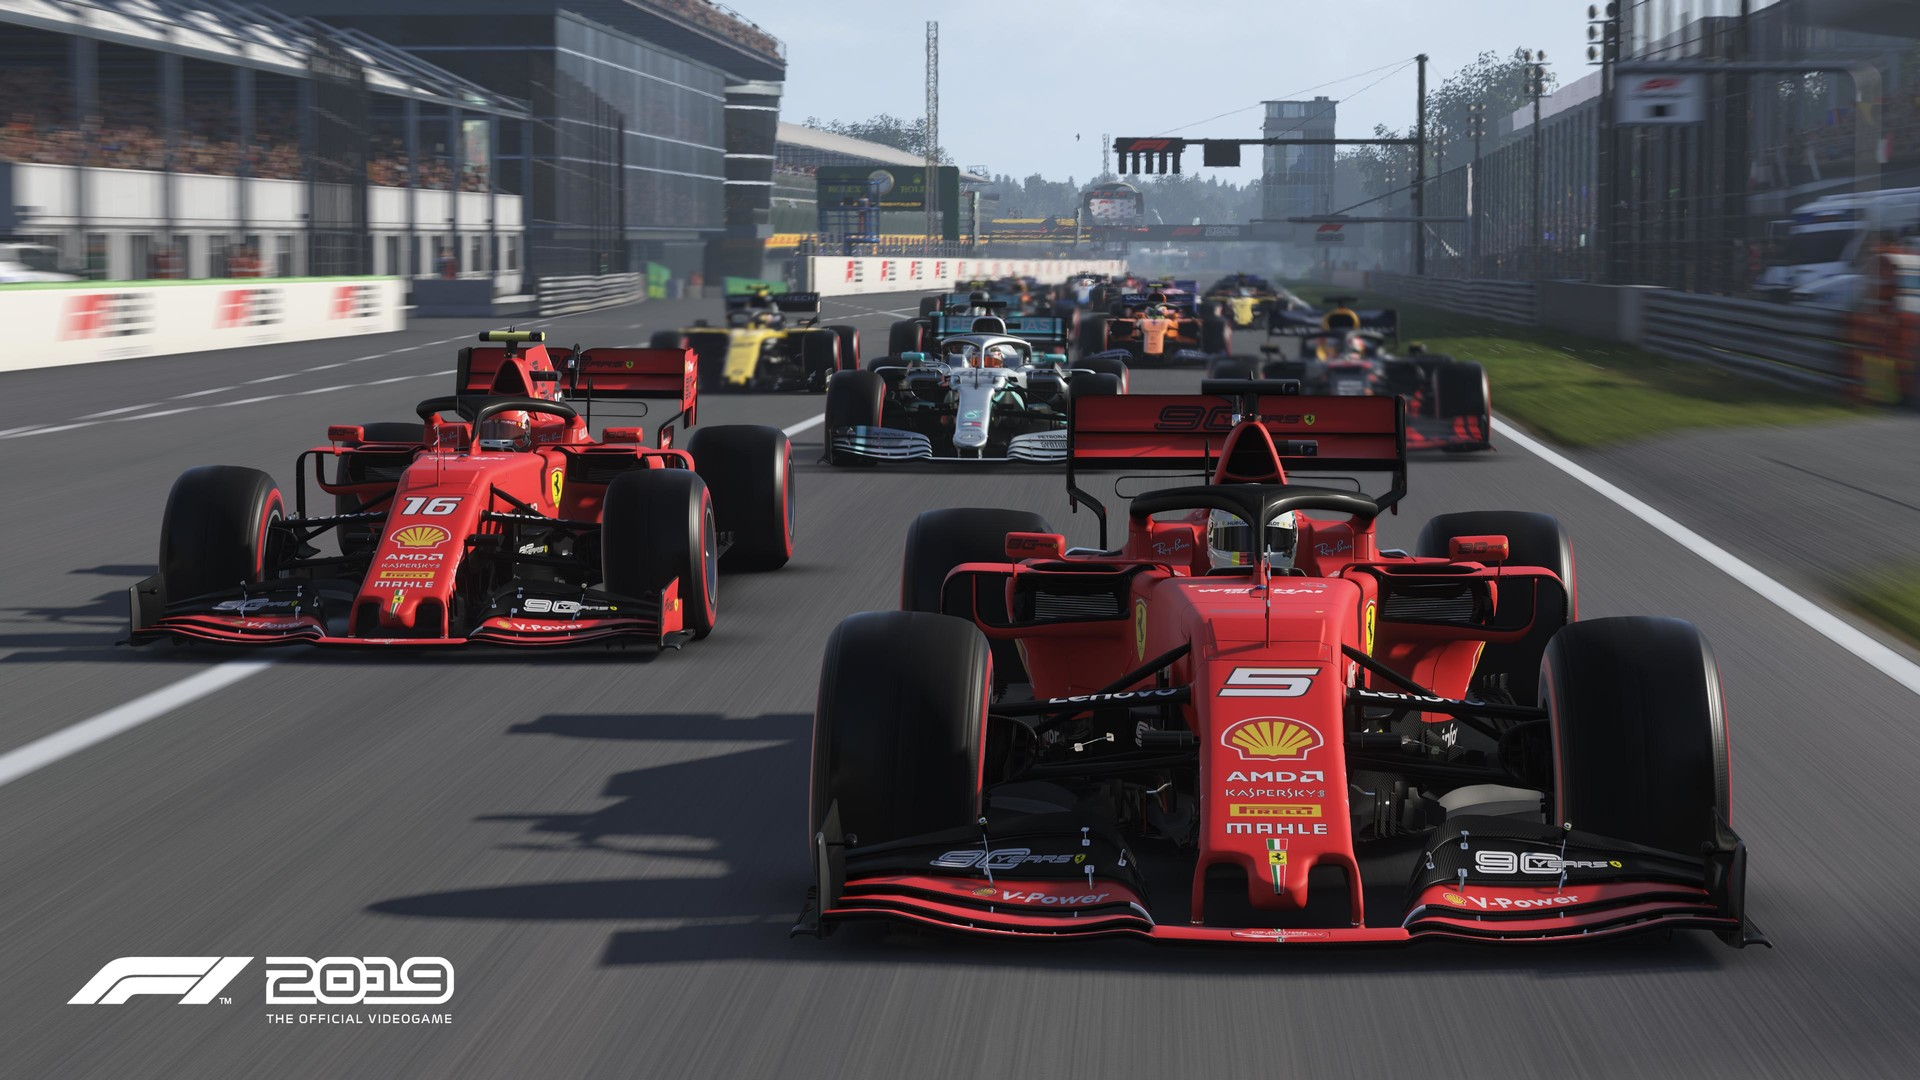 F1 2019 (Steam Key RU+CIS)